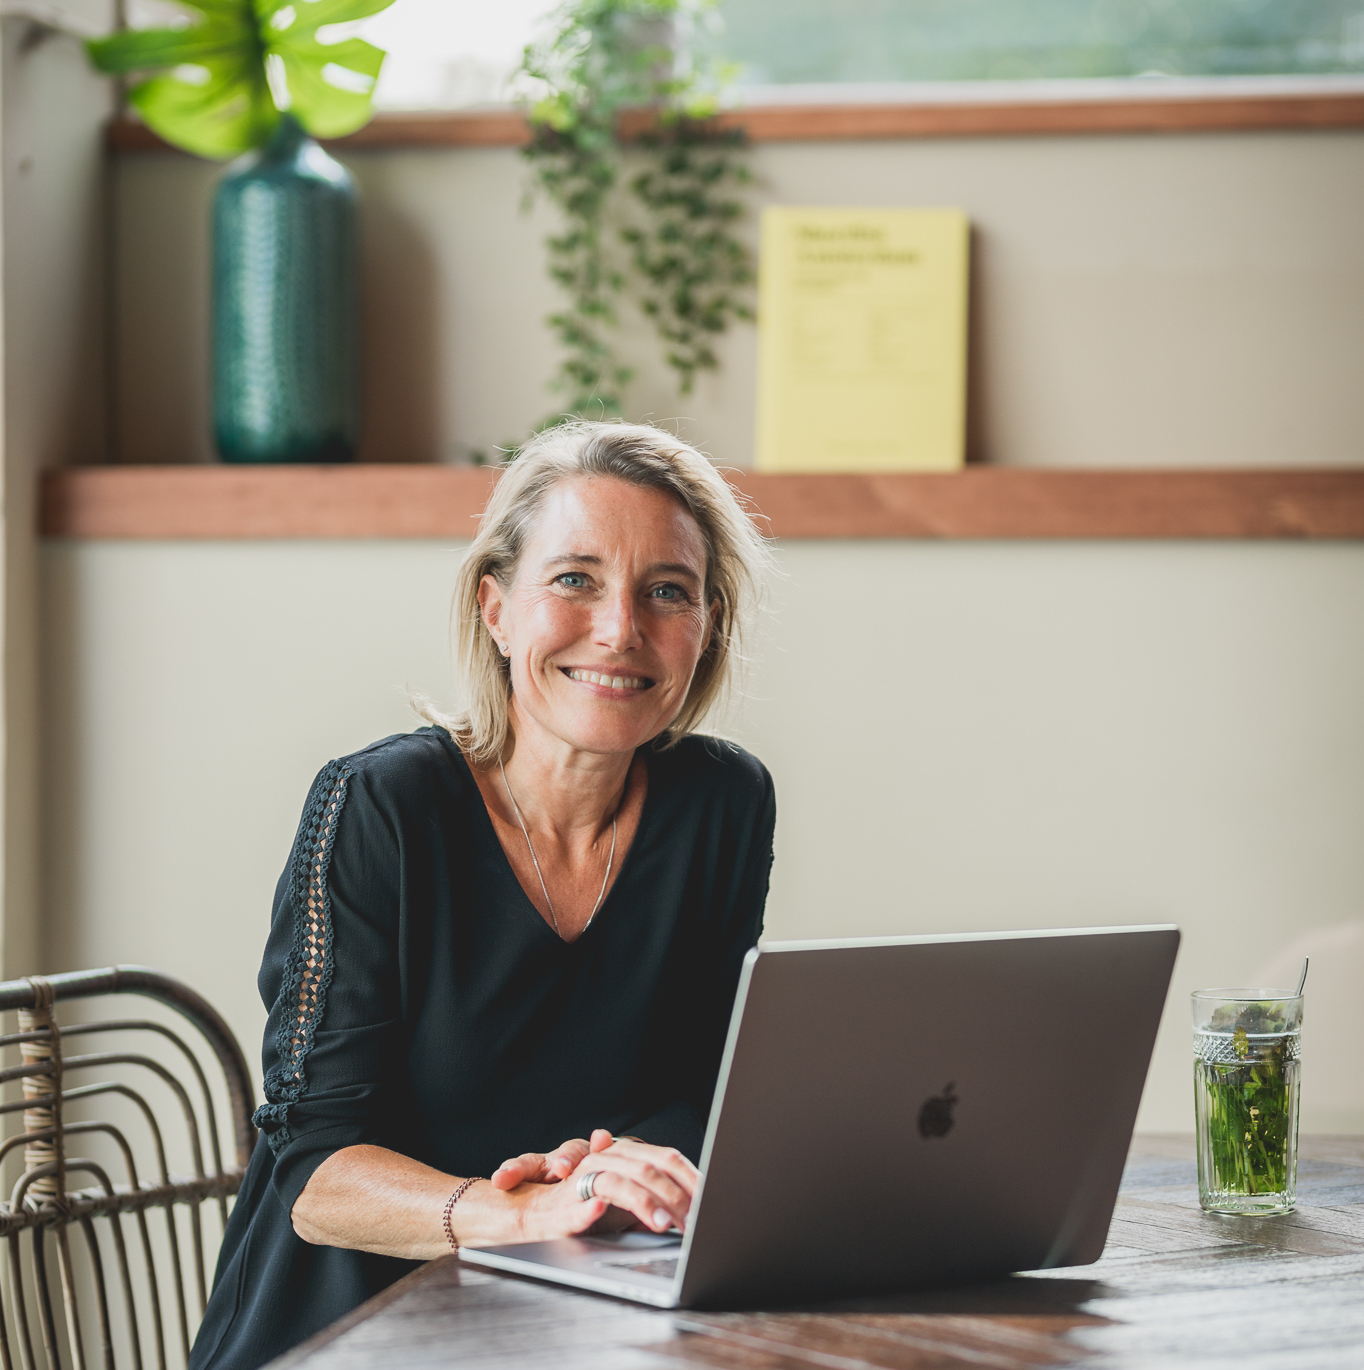 Smiling woman looking into camera with laptop in front of her